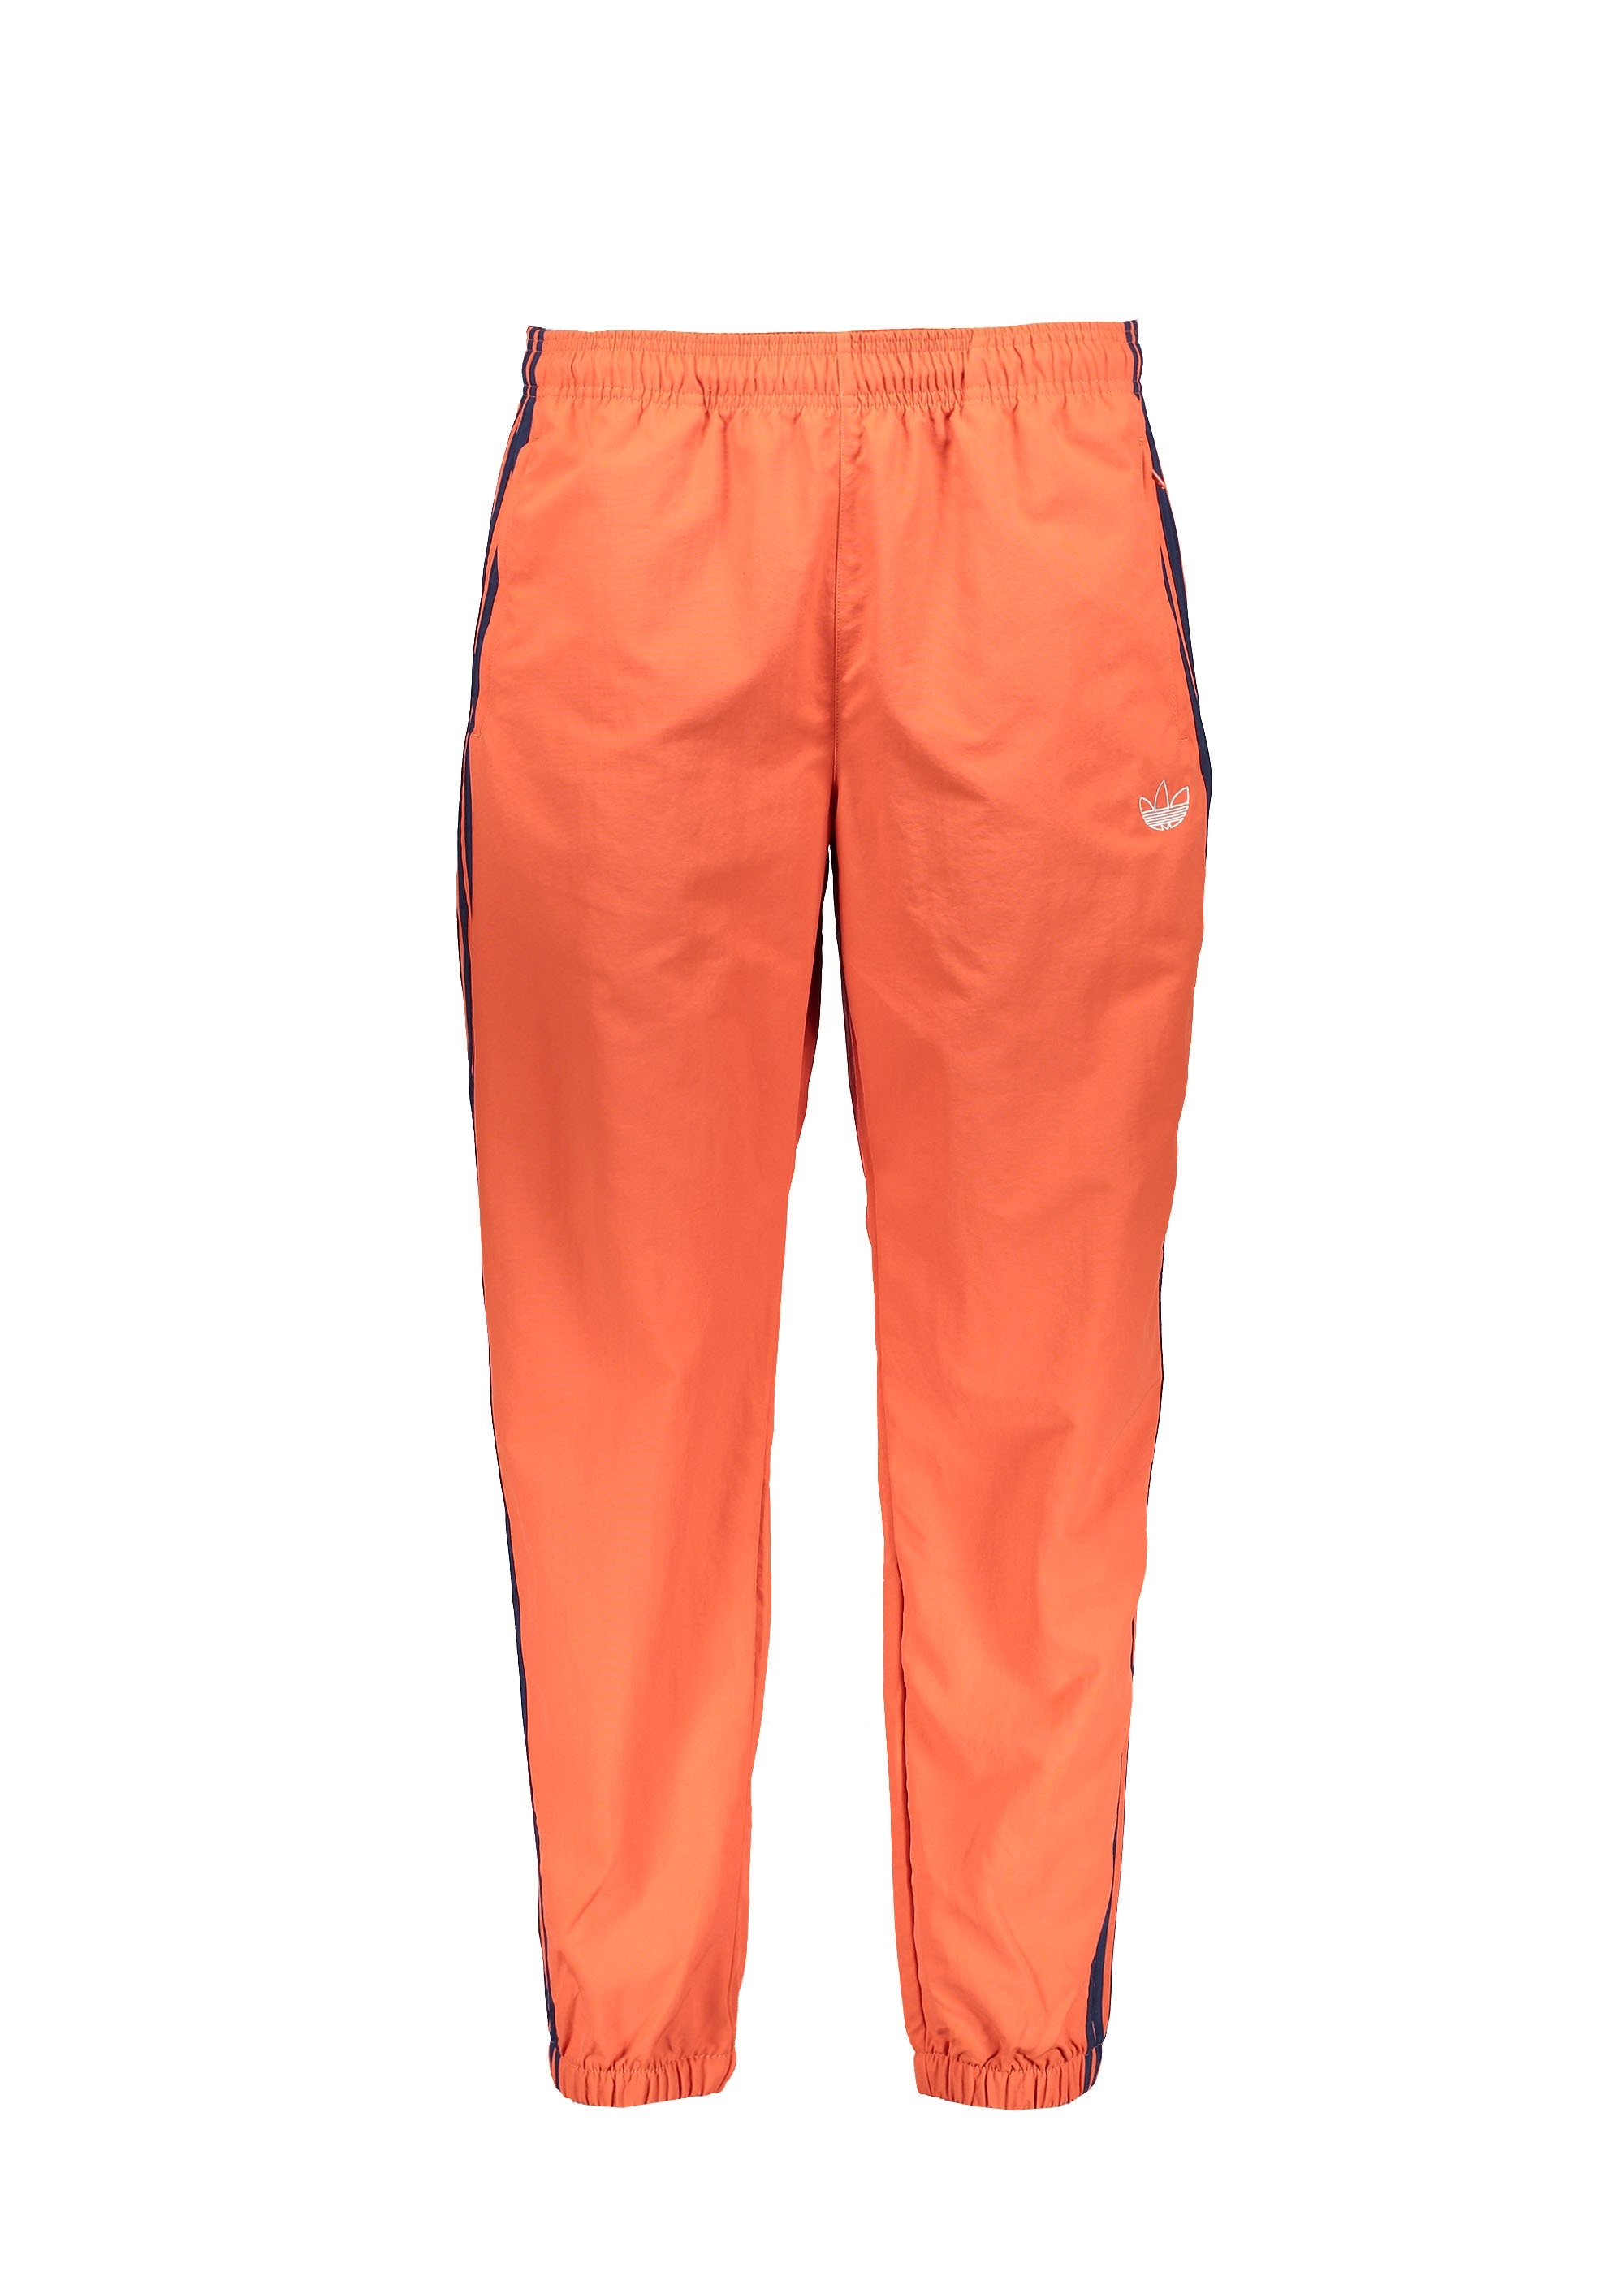 49daa5a4 adidas Originals Apparel Tourney Warm Up Pants - Raw Amber ...